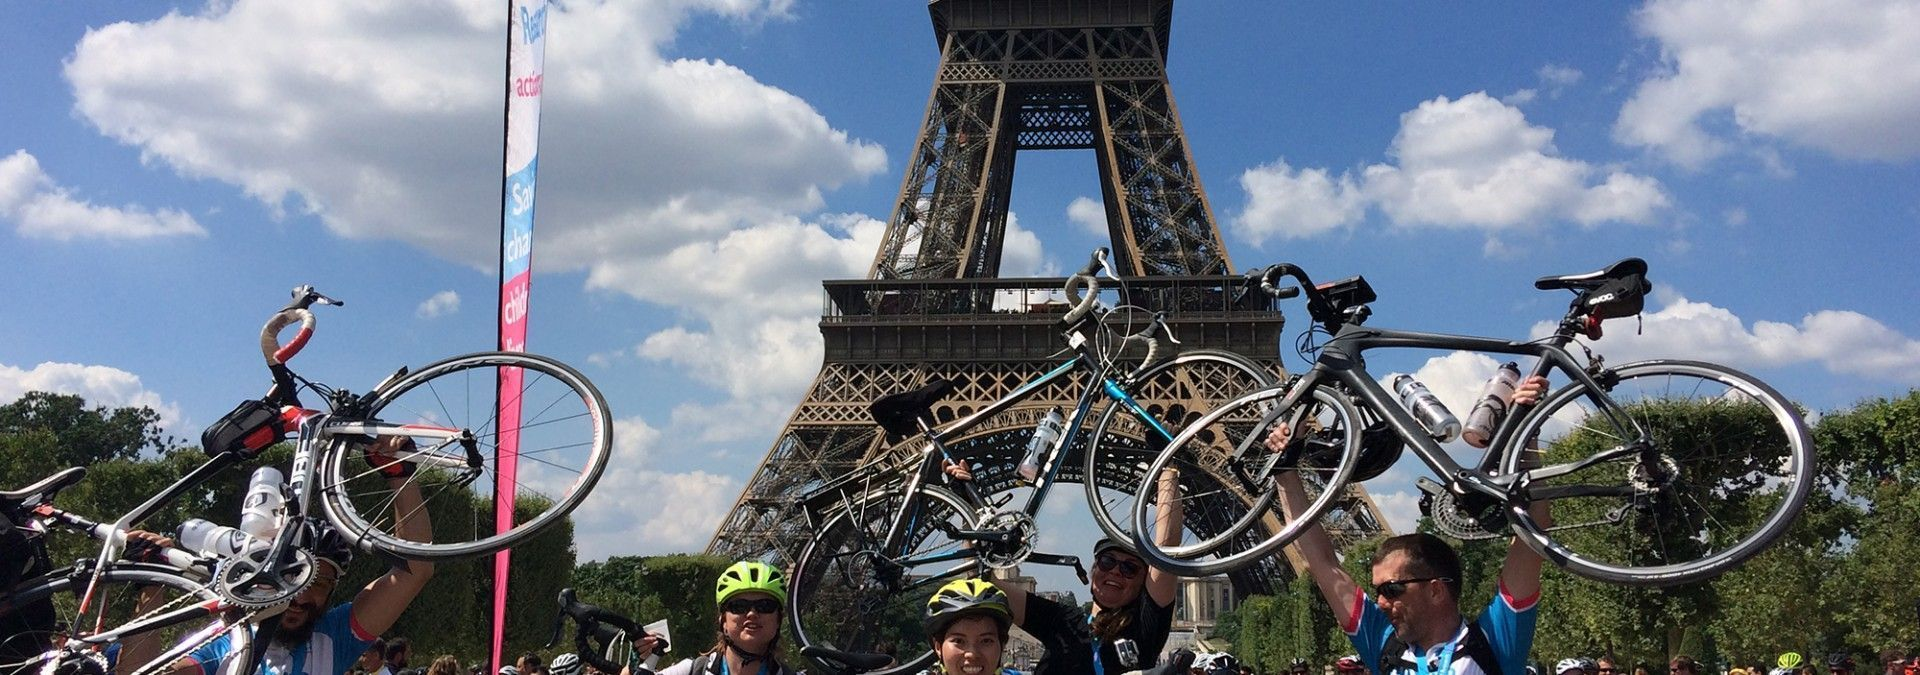 Celebrations_under_Eiffel-Tower_AMR_cyclists.jpg